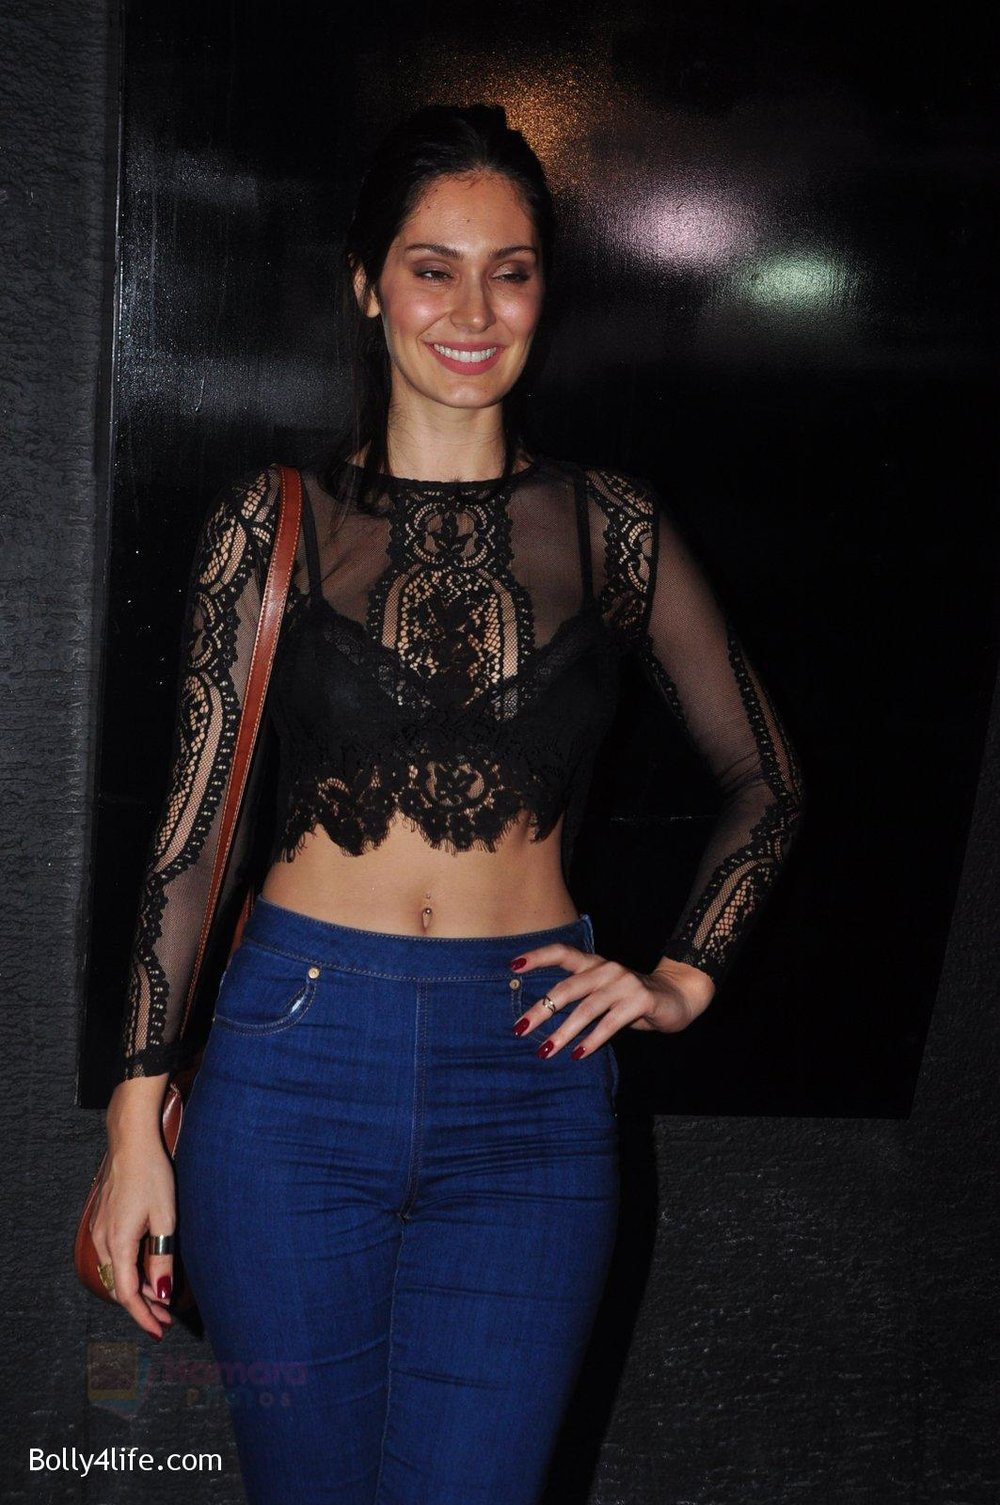 Bruna-Abdulla-at-Trilogy-Bash-on-6th-Oct-2016-74.jpg